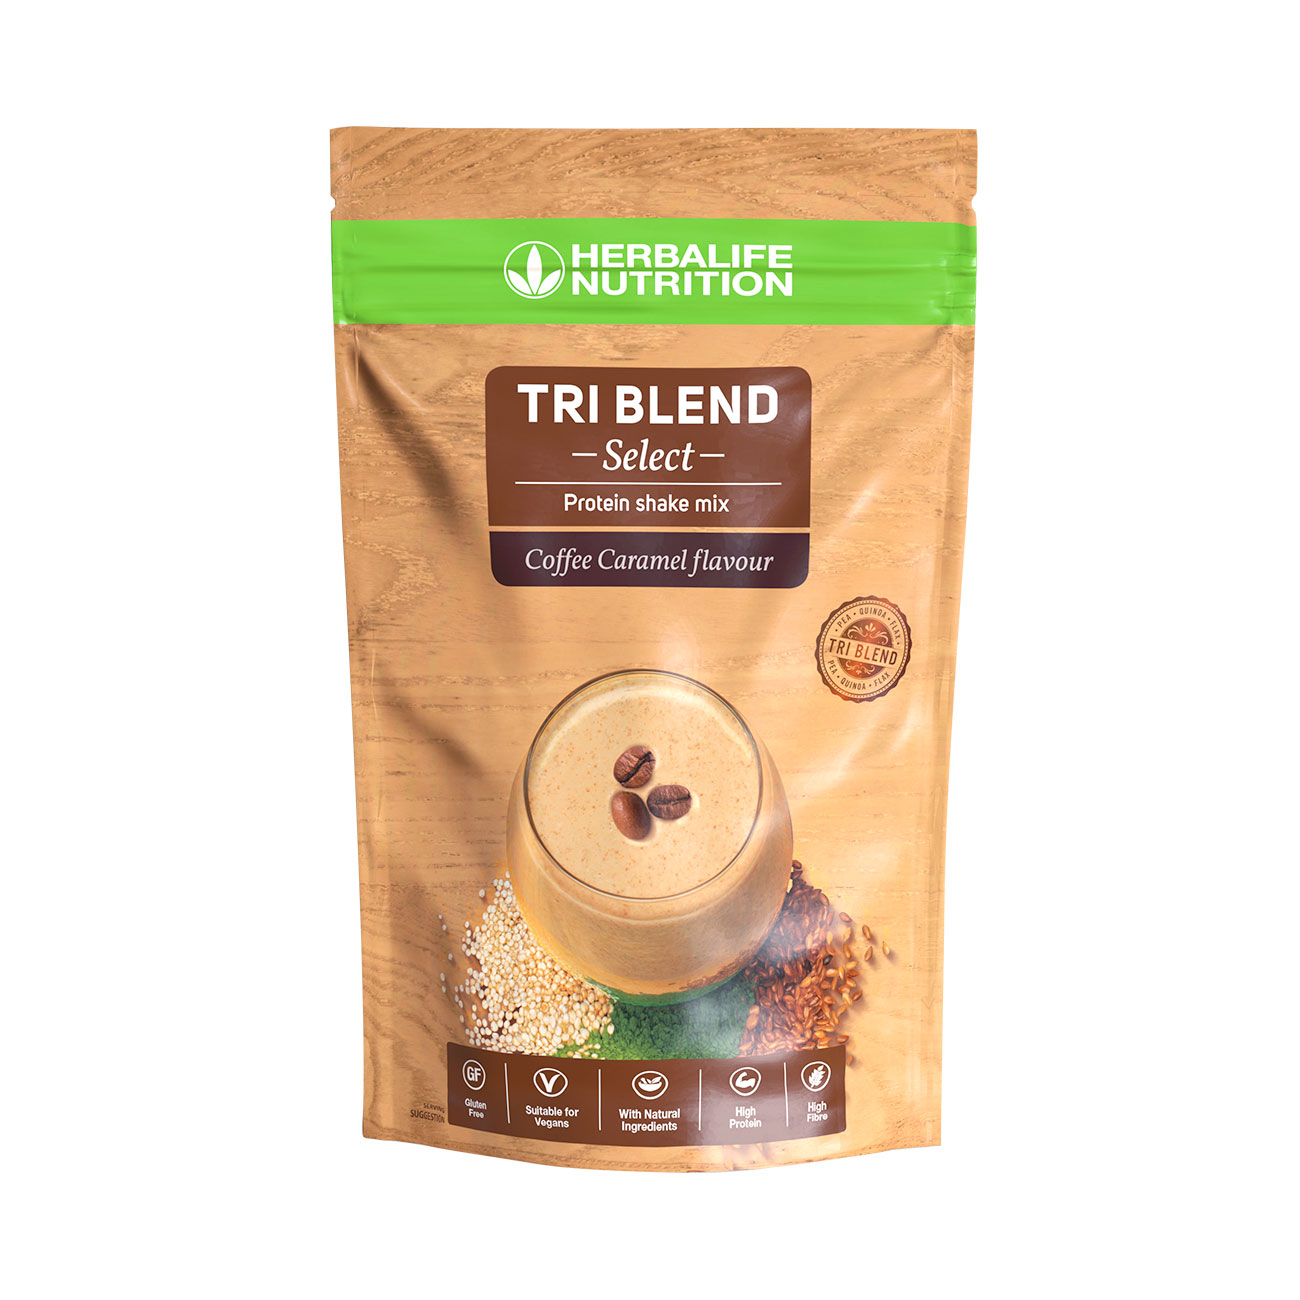 Tri Blend Select Protein Shake Mix Coffee Caramel Flavoured product shot